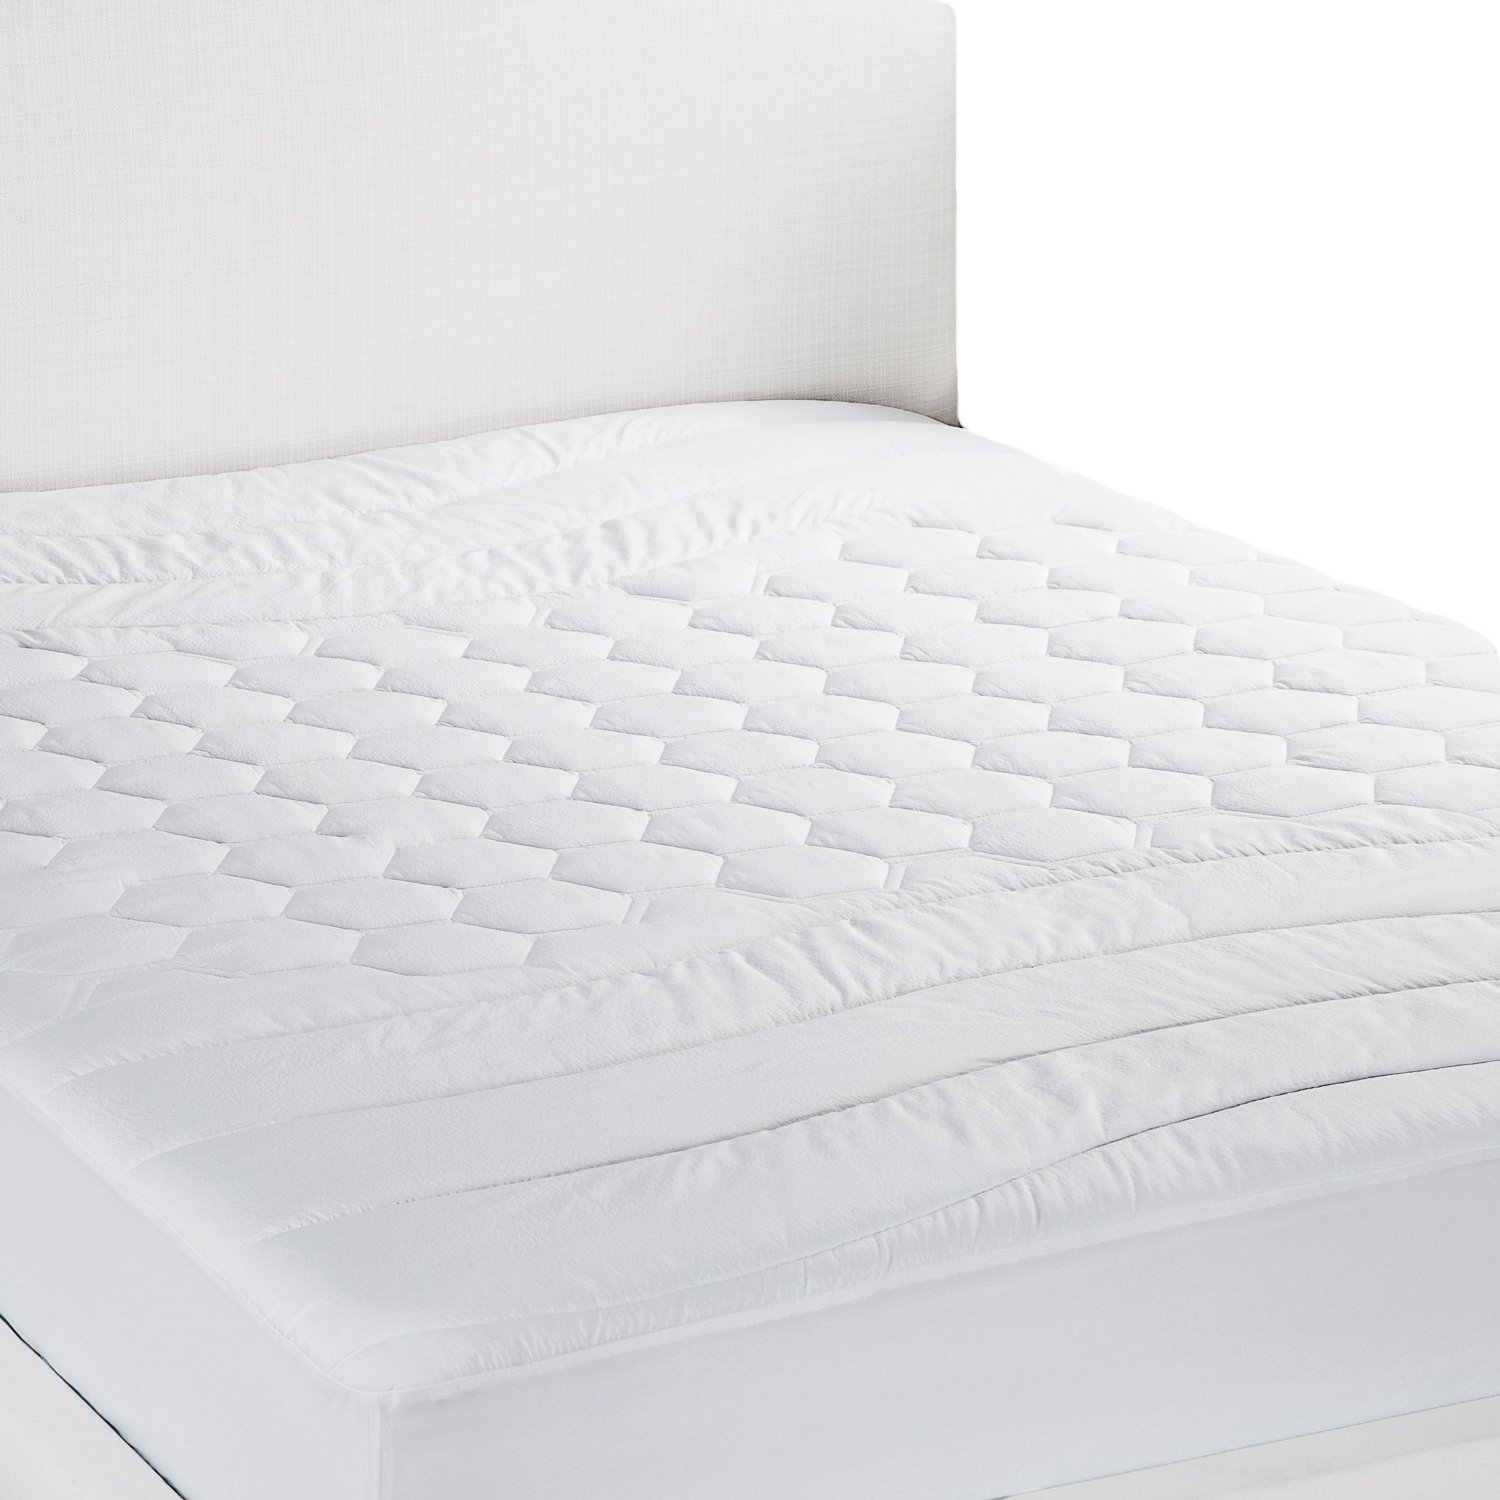 Mattress Pad King Size Hypoallergenic - Antibacterial, Breathable - Ultra Soft Quilted Mattress Protector